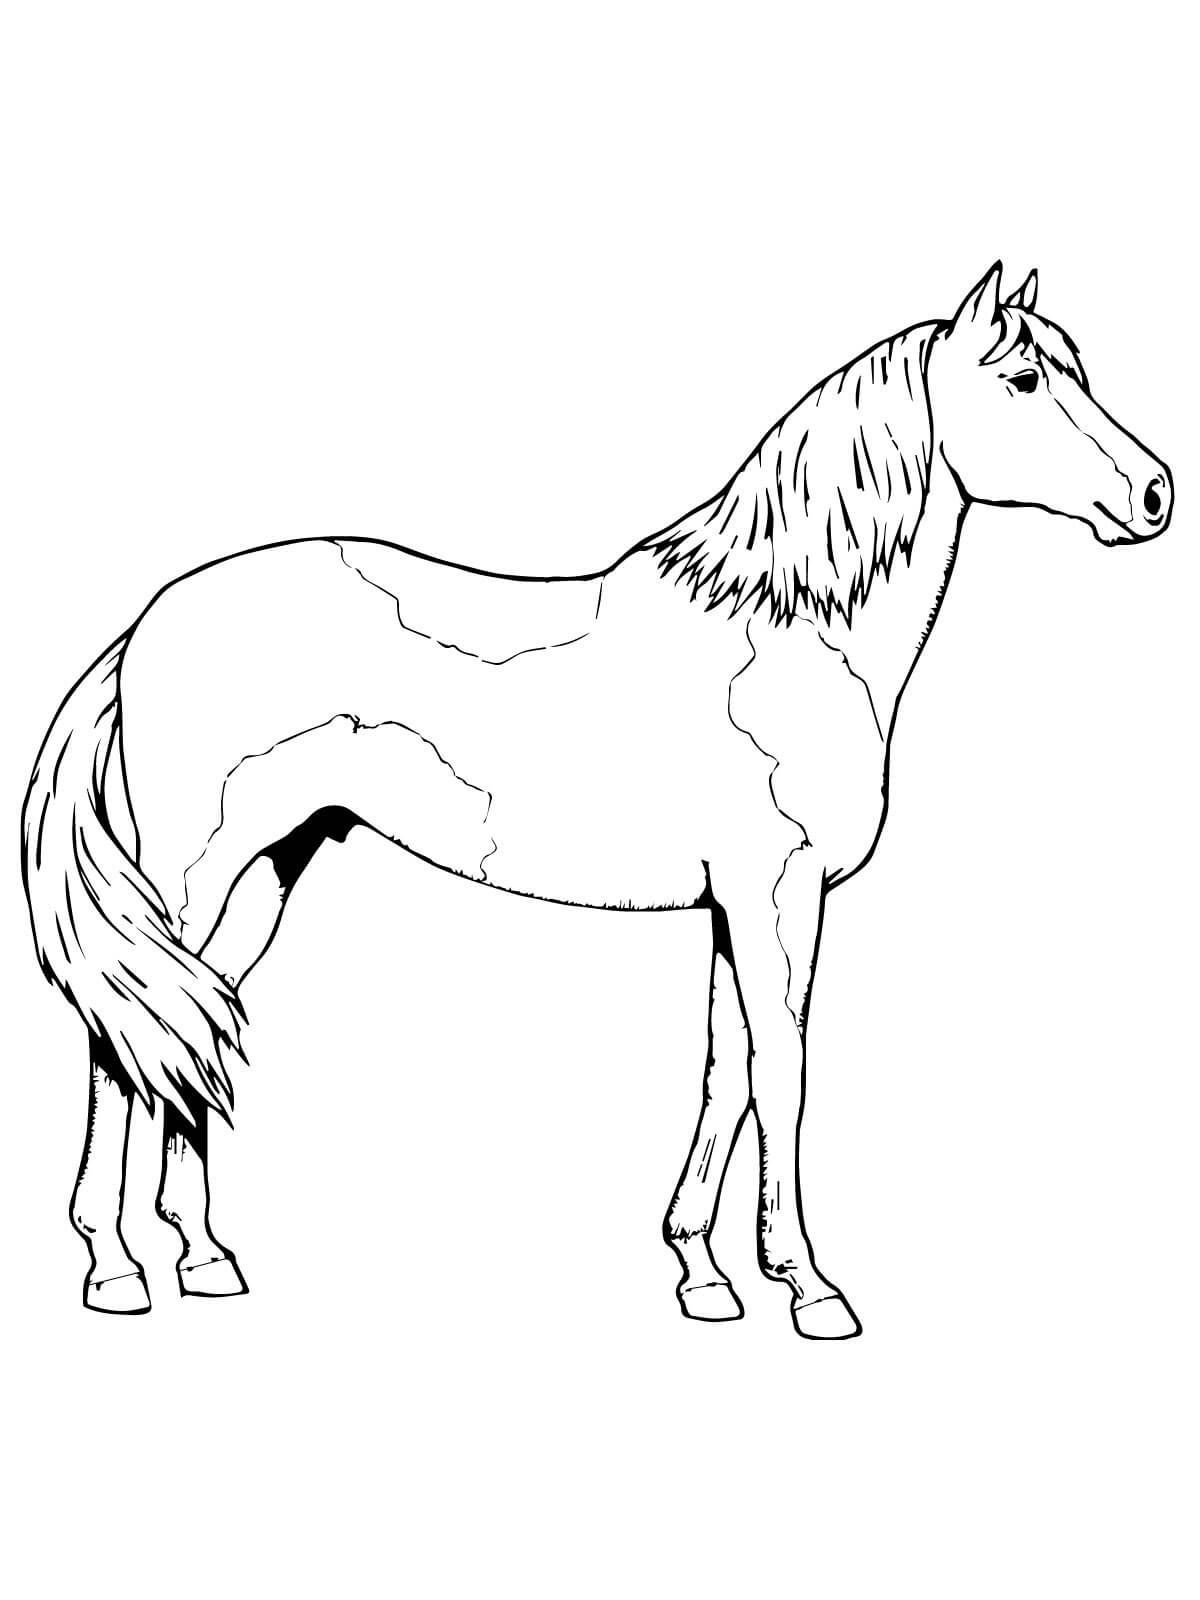 horse colouring picture palomino horse coloring pages download and print for free colouring horse picture